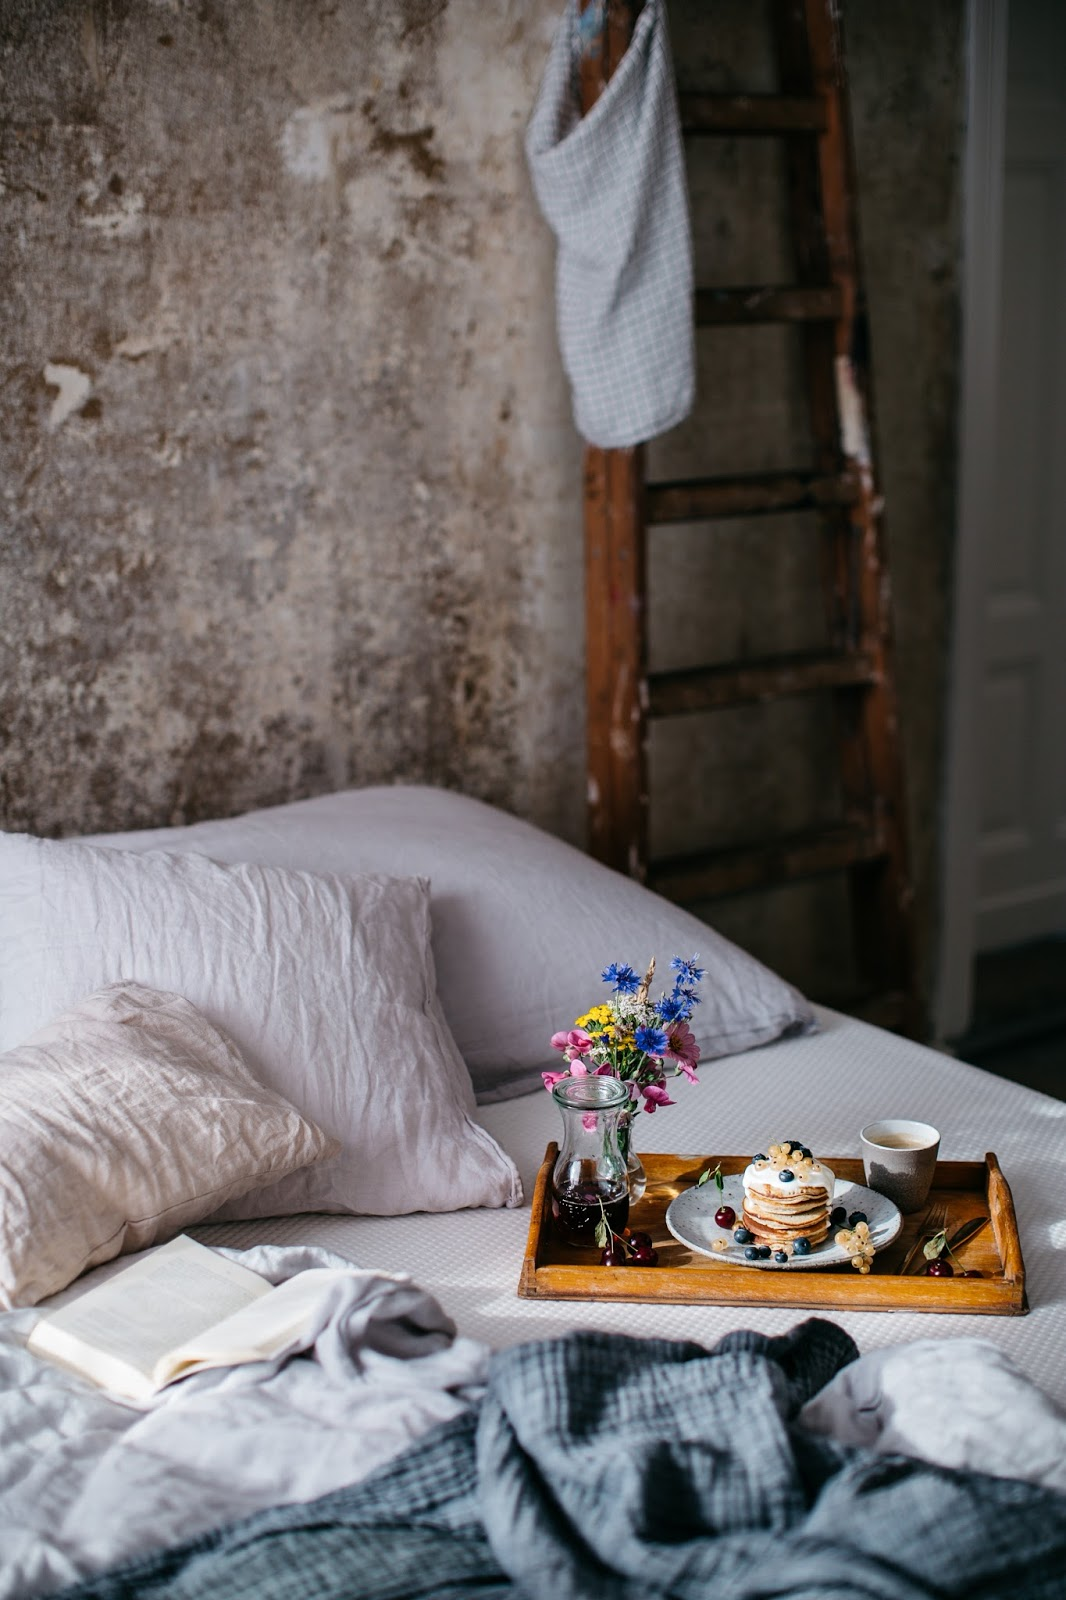 breakfast in bed with our new comfortable muun mattress & delicious ...